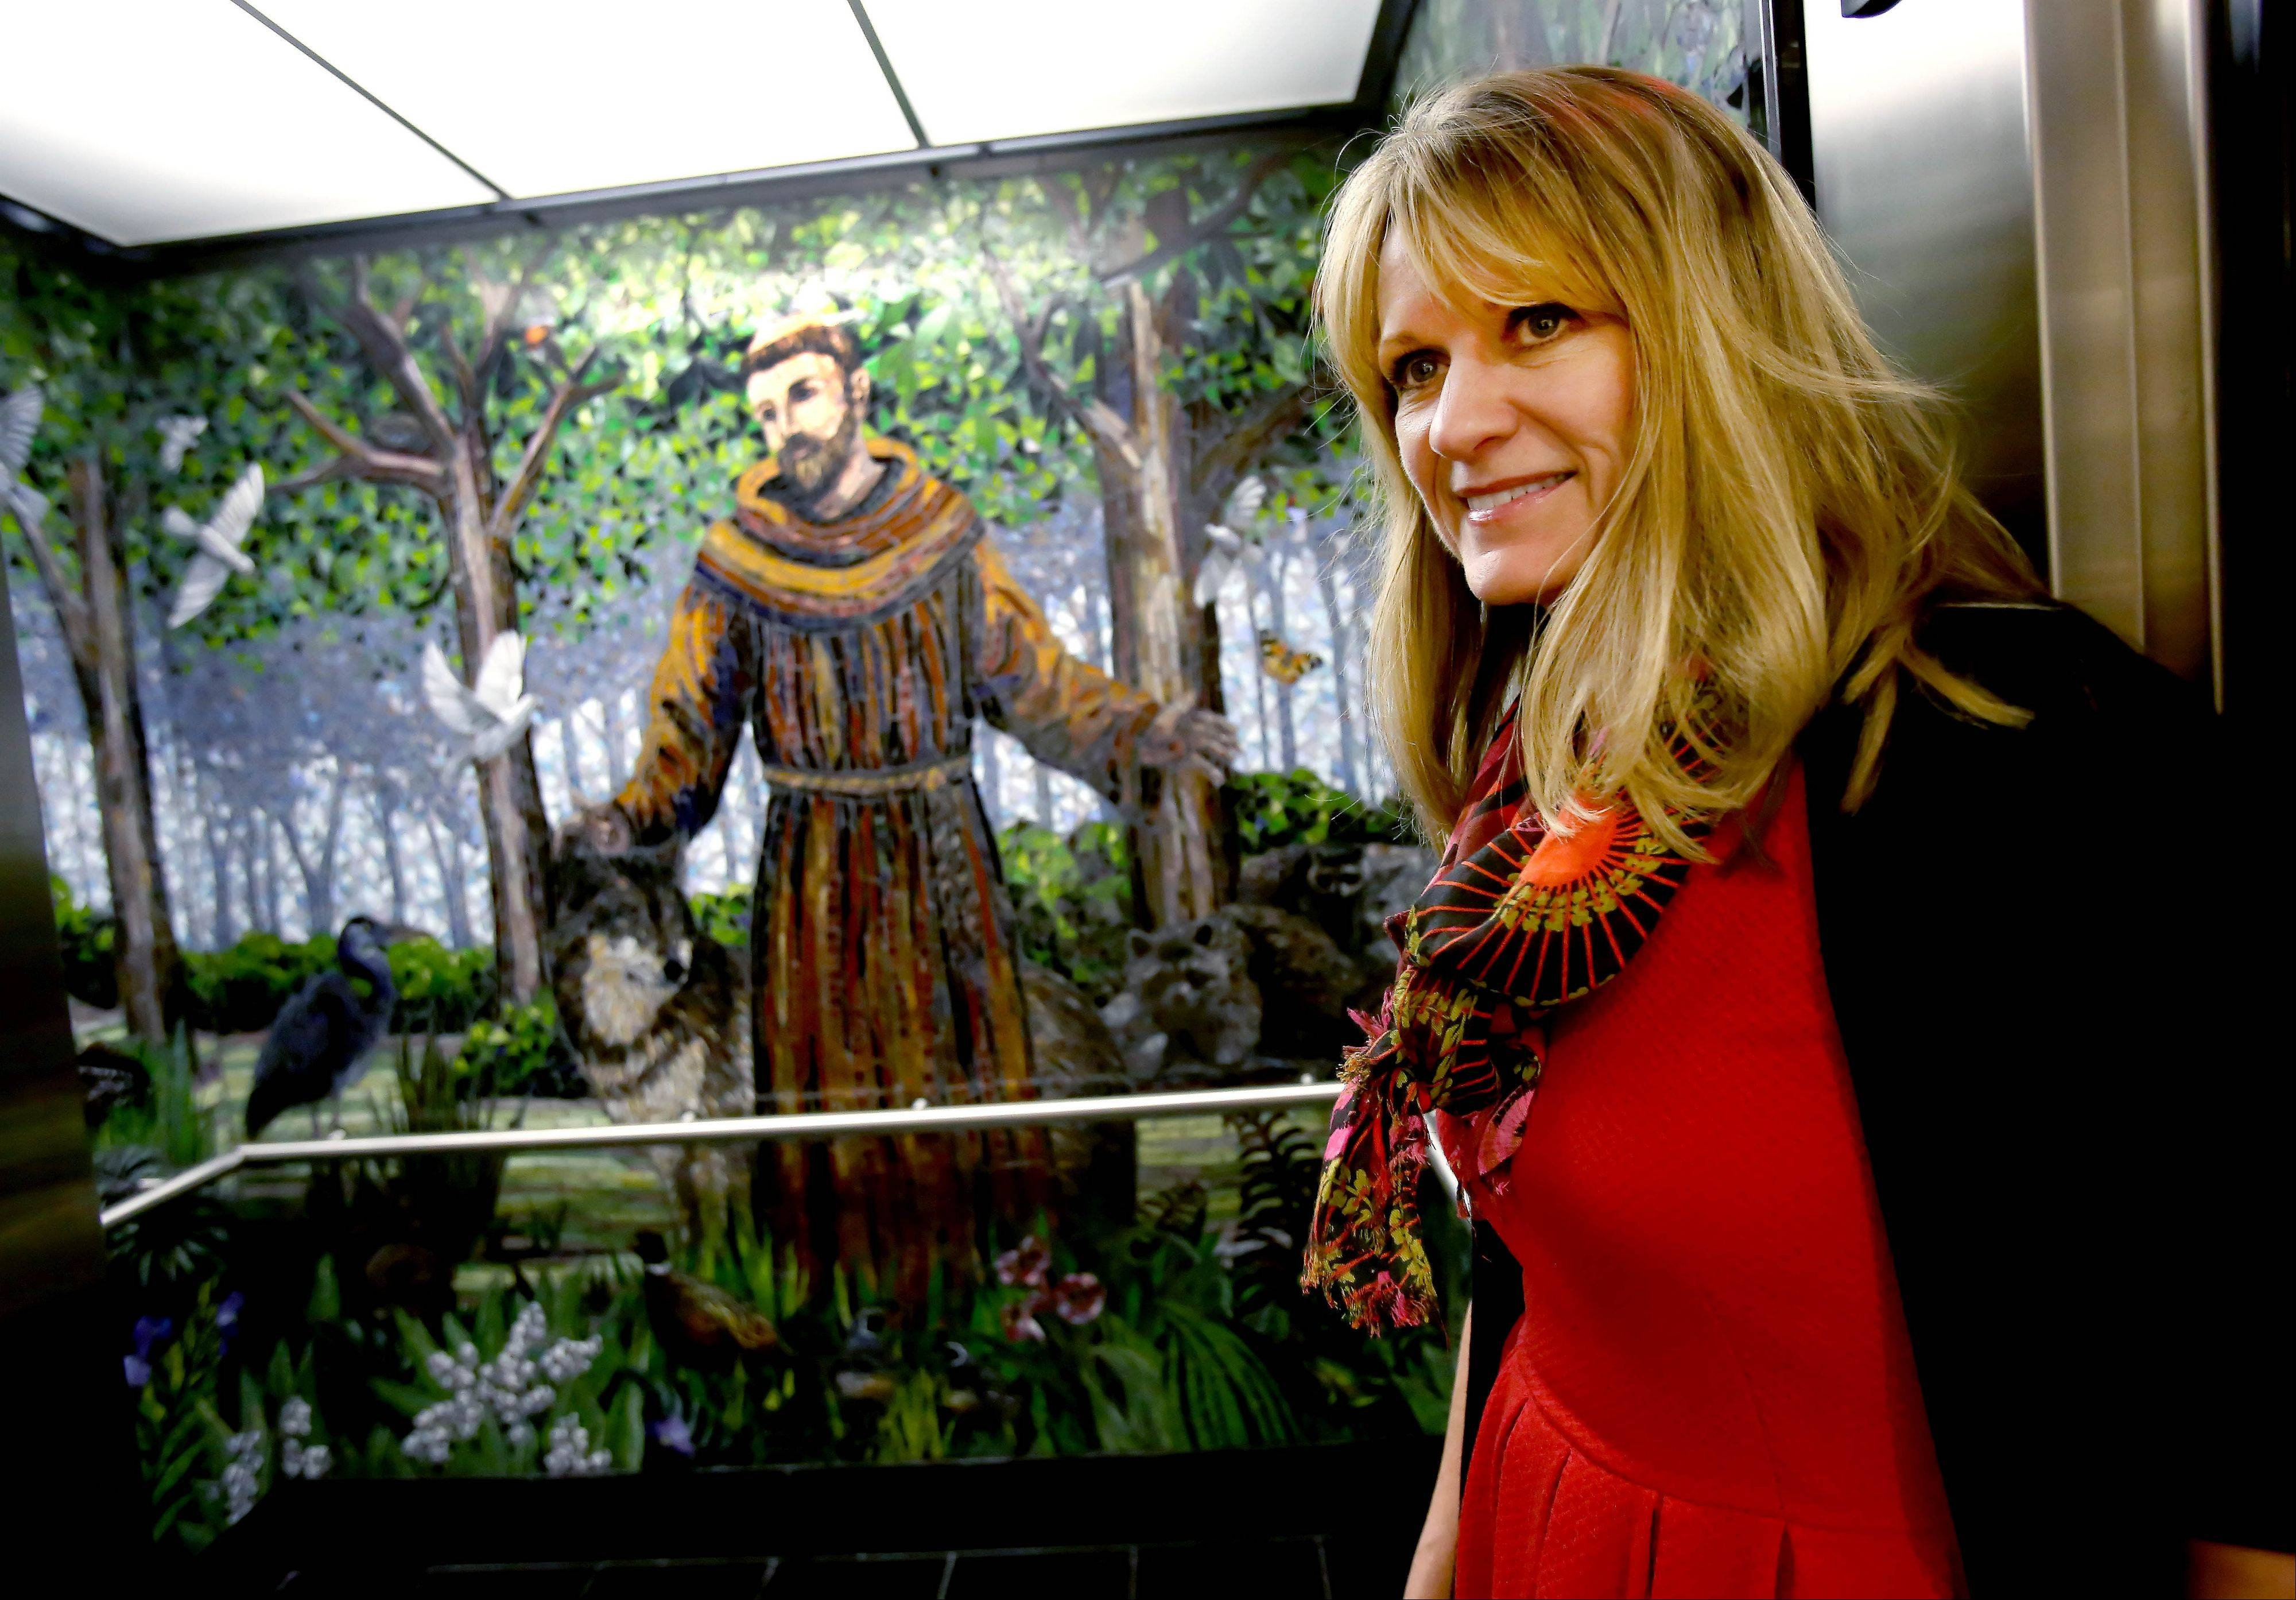 Diane Mercadante, director of pastoral ministry at St. Francis High School in Wheaton, talks about the new pope while standing by an elevator with a mosaic of St. Francis.